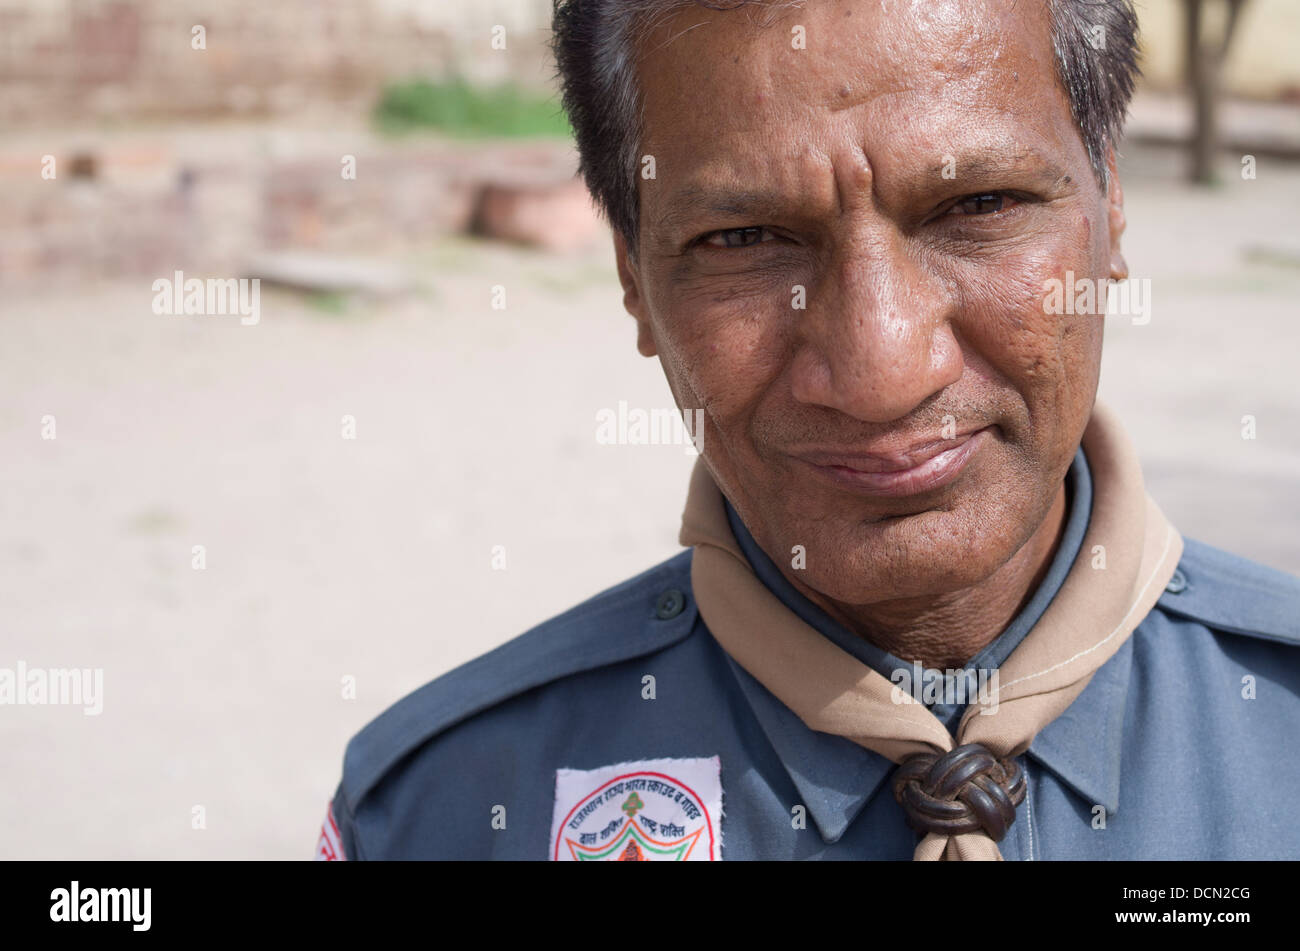 Indian Scout Leader with neckerchief and woggle Jodhpur, Rajashtan, India - Stock Image